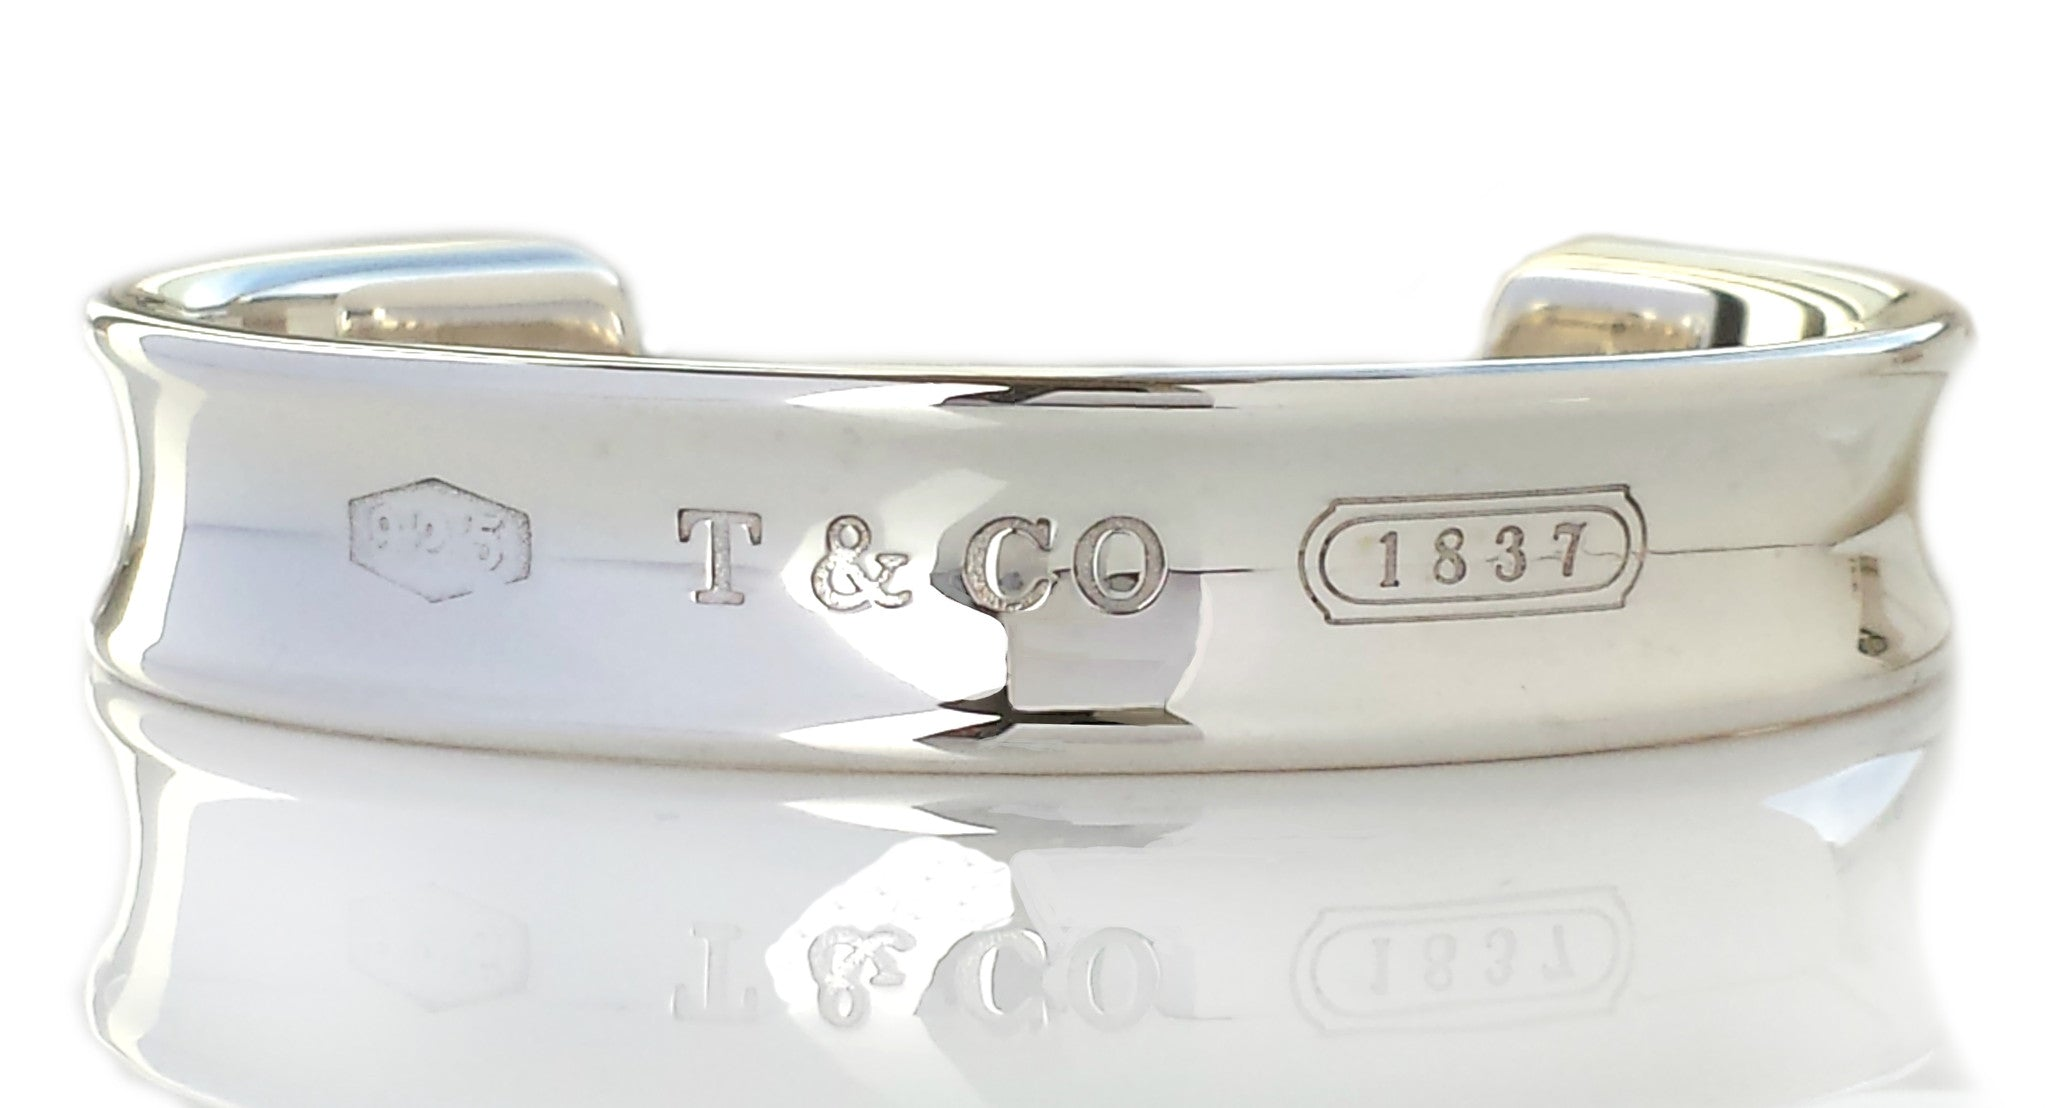 399c4adf9 Tiffany & Co 1837 Sterling Silver Bangle Bracelet Small - Bloomsbury Manor  Ltd